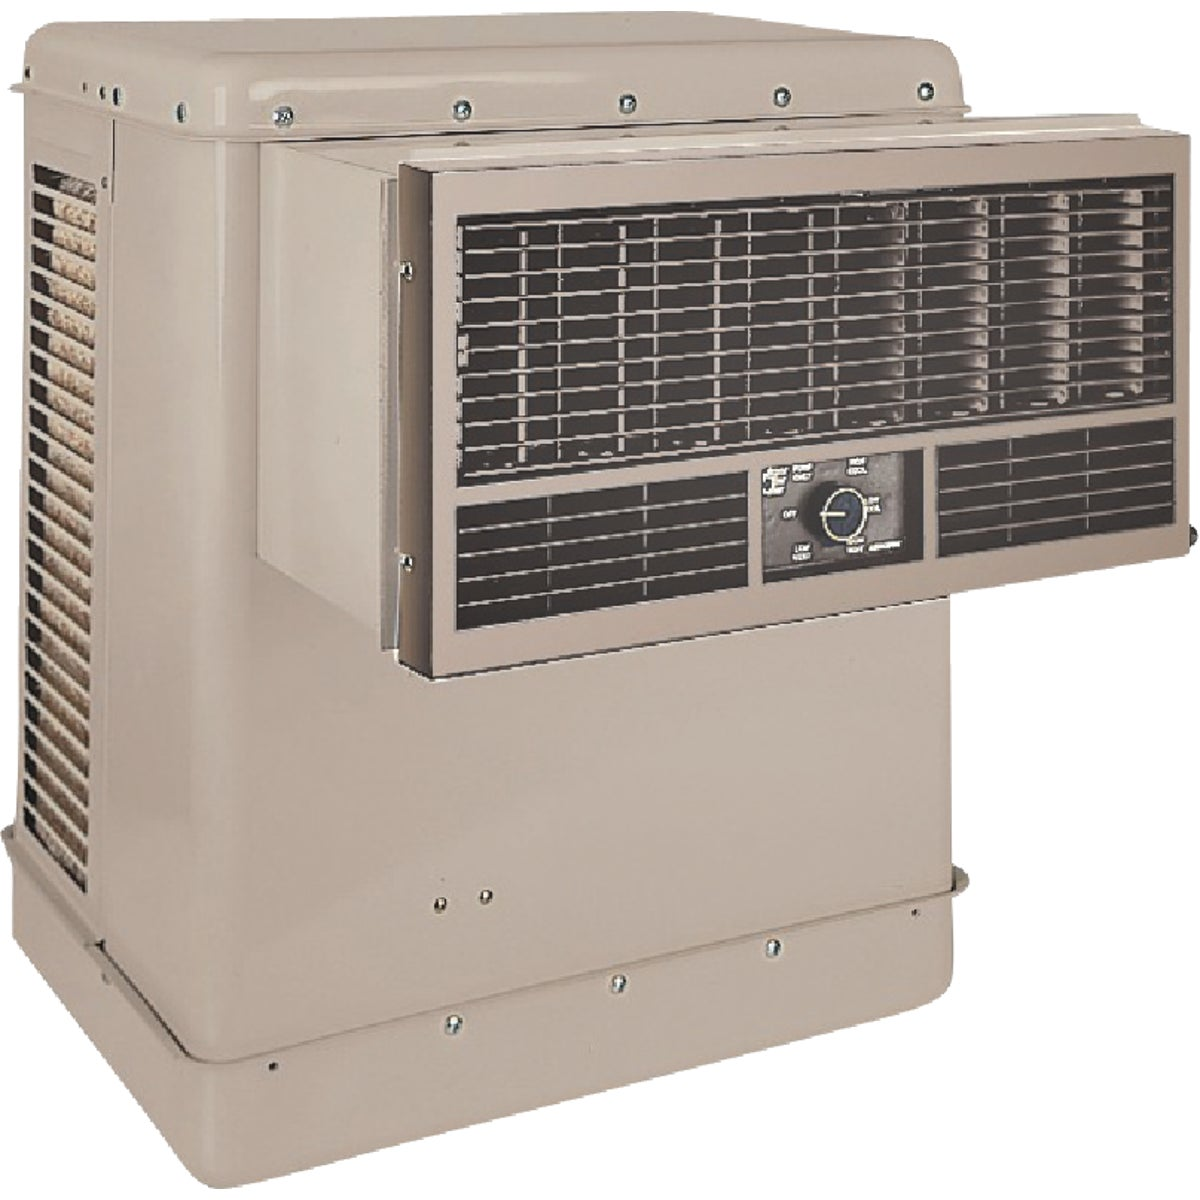 2800CFM WINDOW COOLER - N28W by Champion Cooler Corp